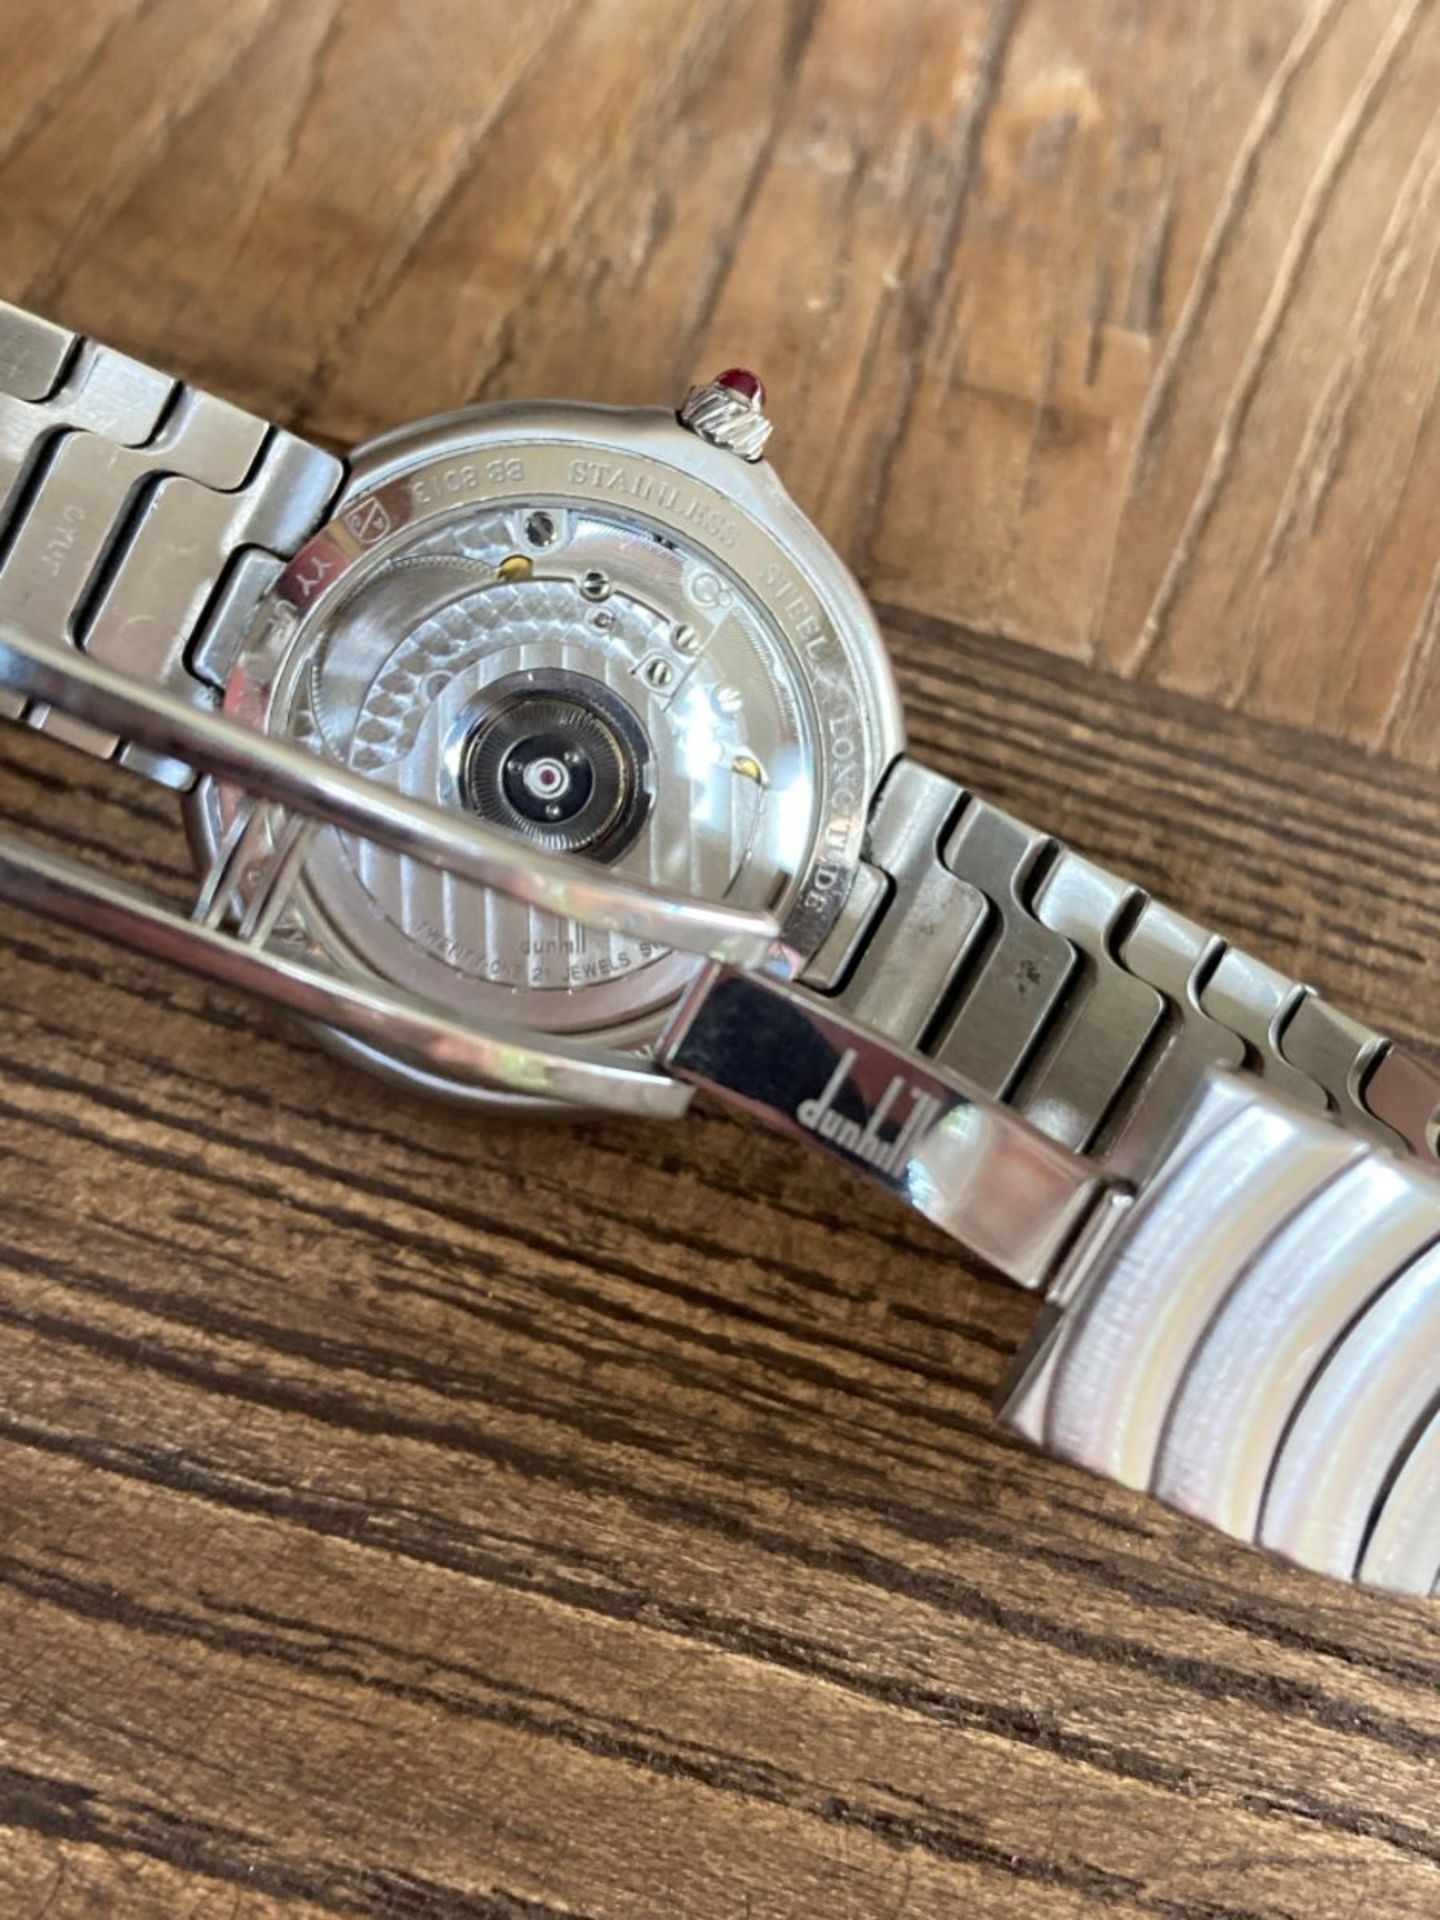 ALFRED DUNHILL WATCH - Image 5 of 6